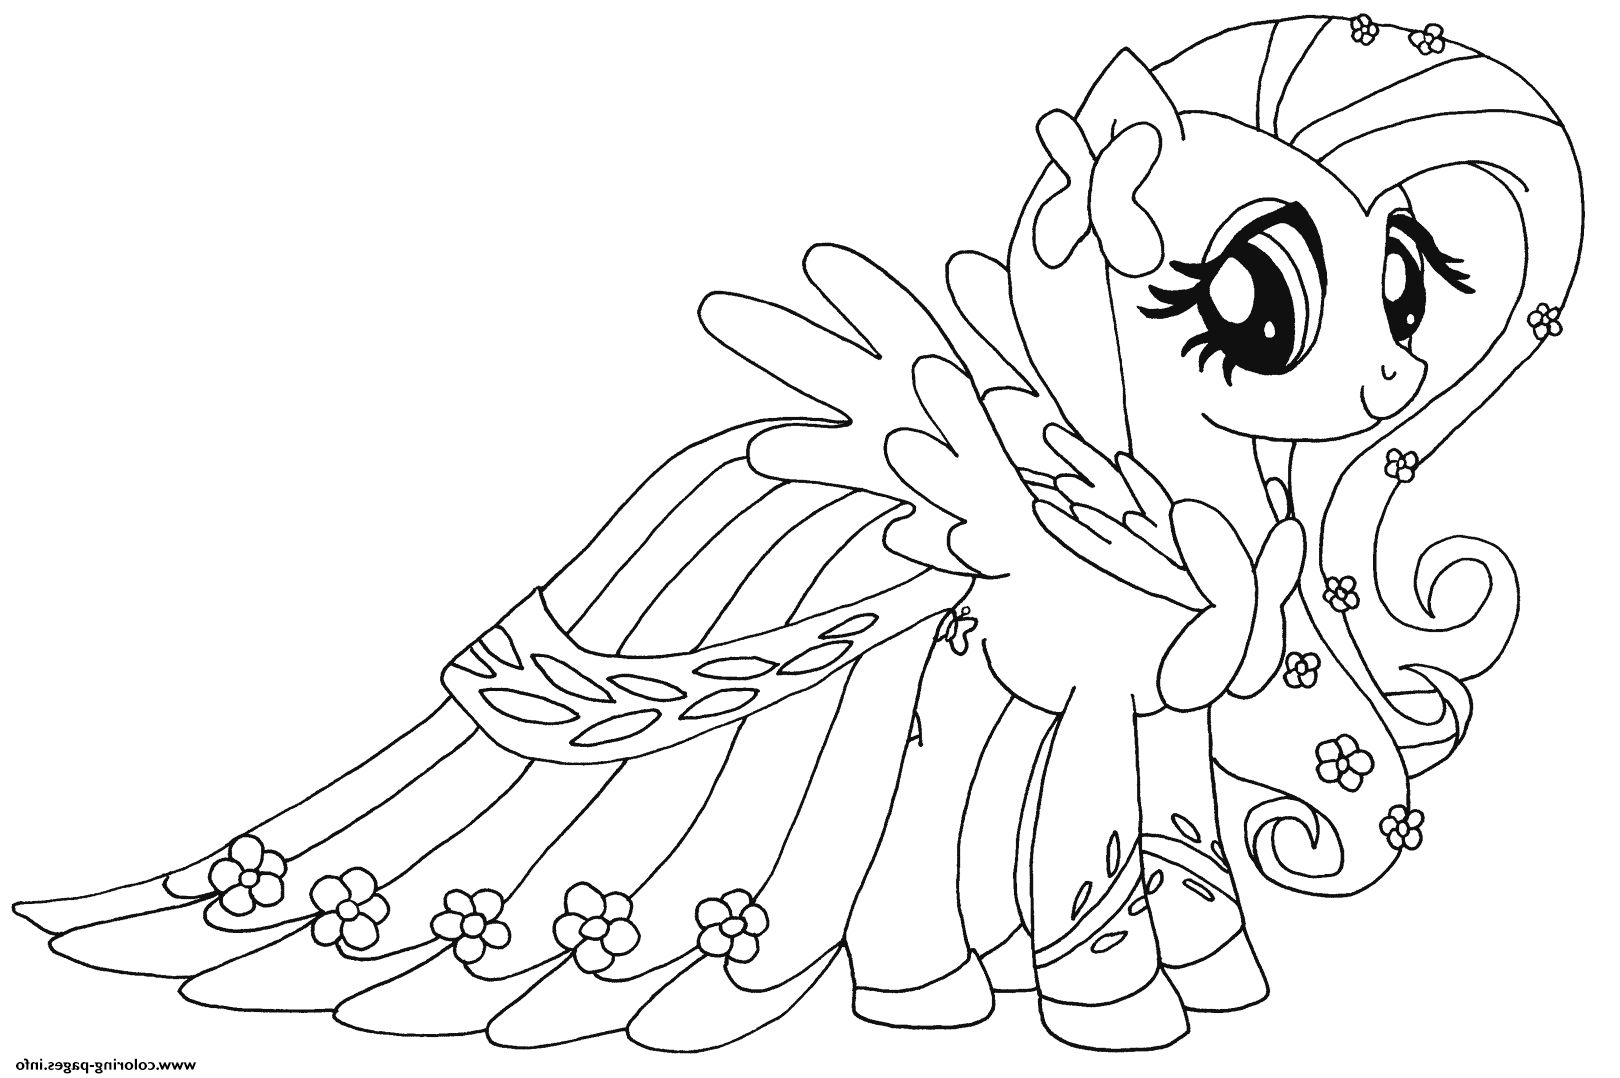 coloring cartoon little pony 64 coloring book little pony pdf hd coloring little pony cartoon